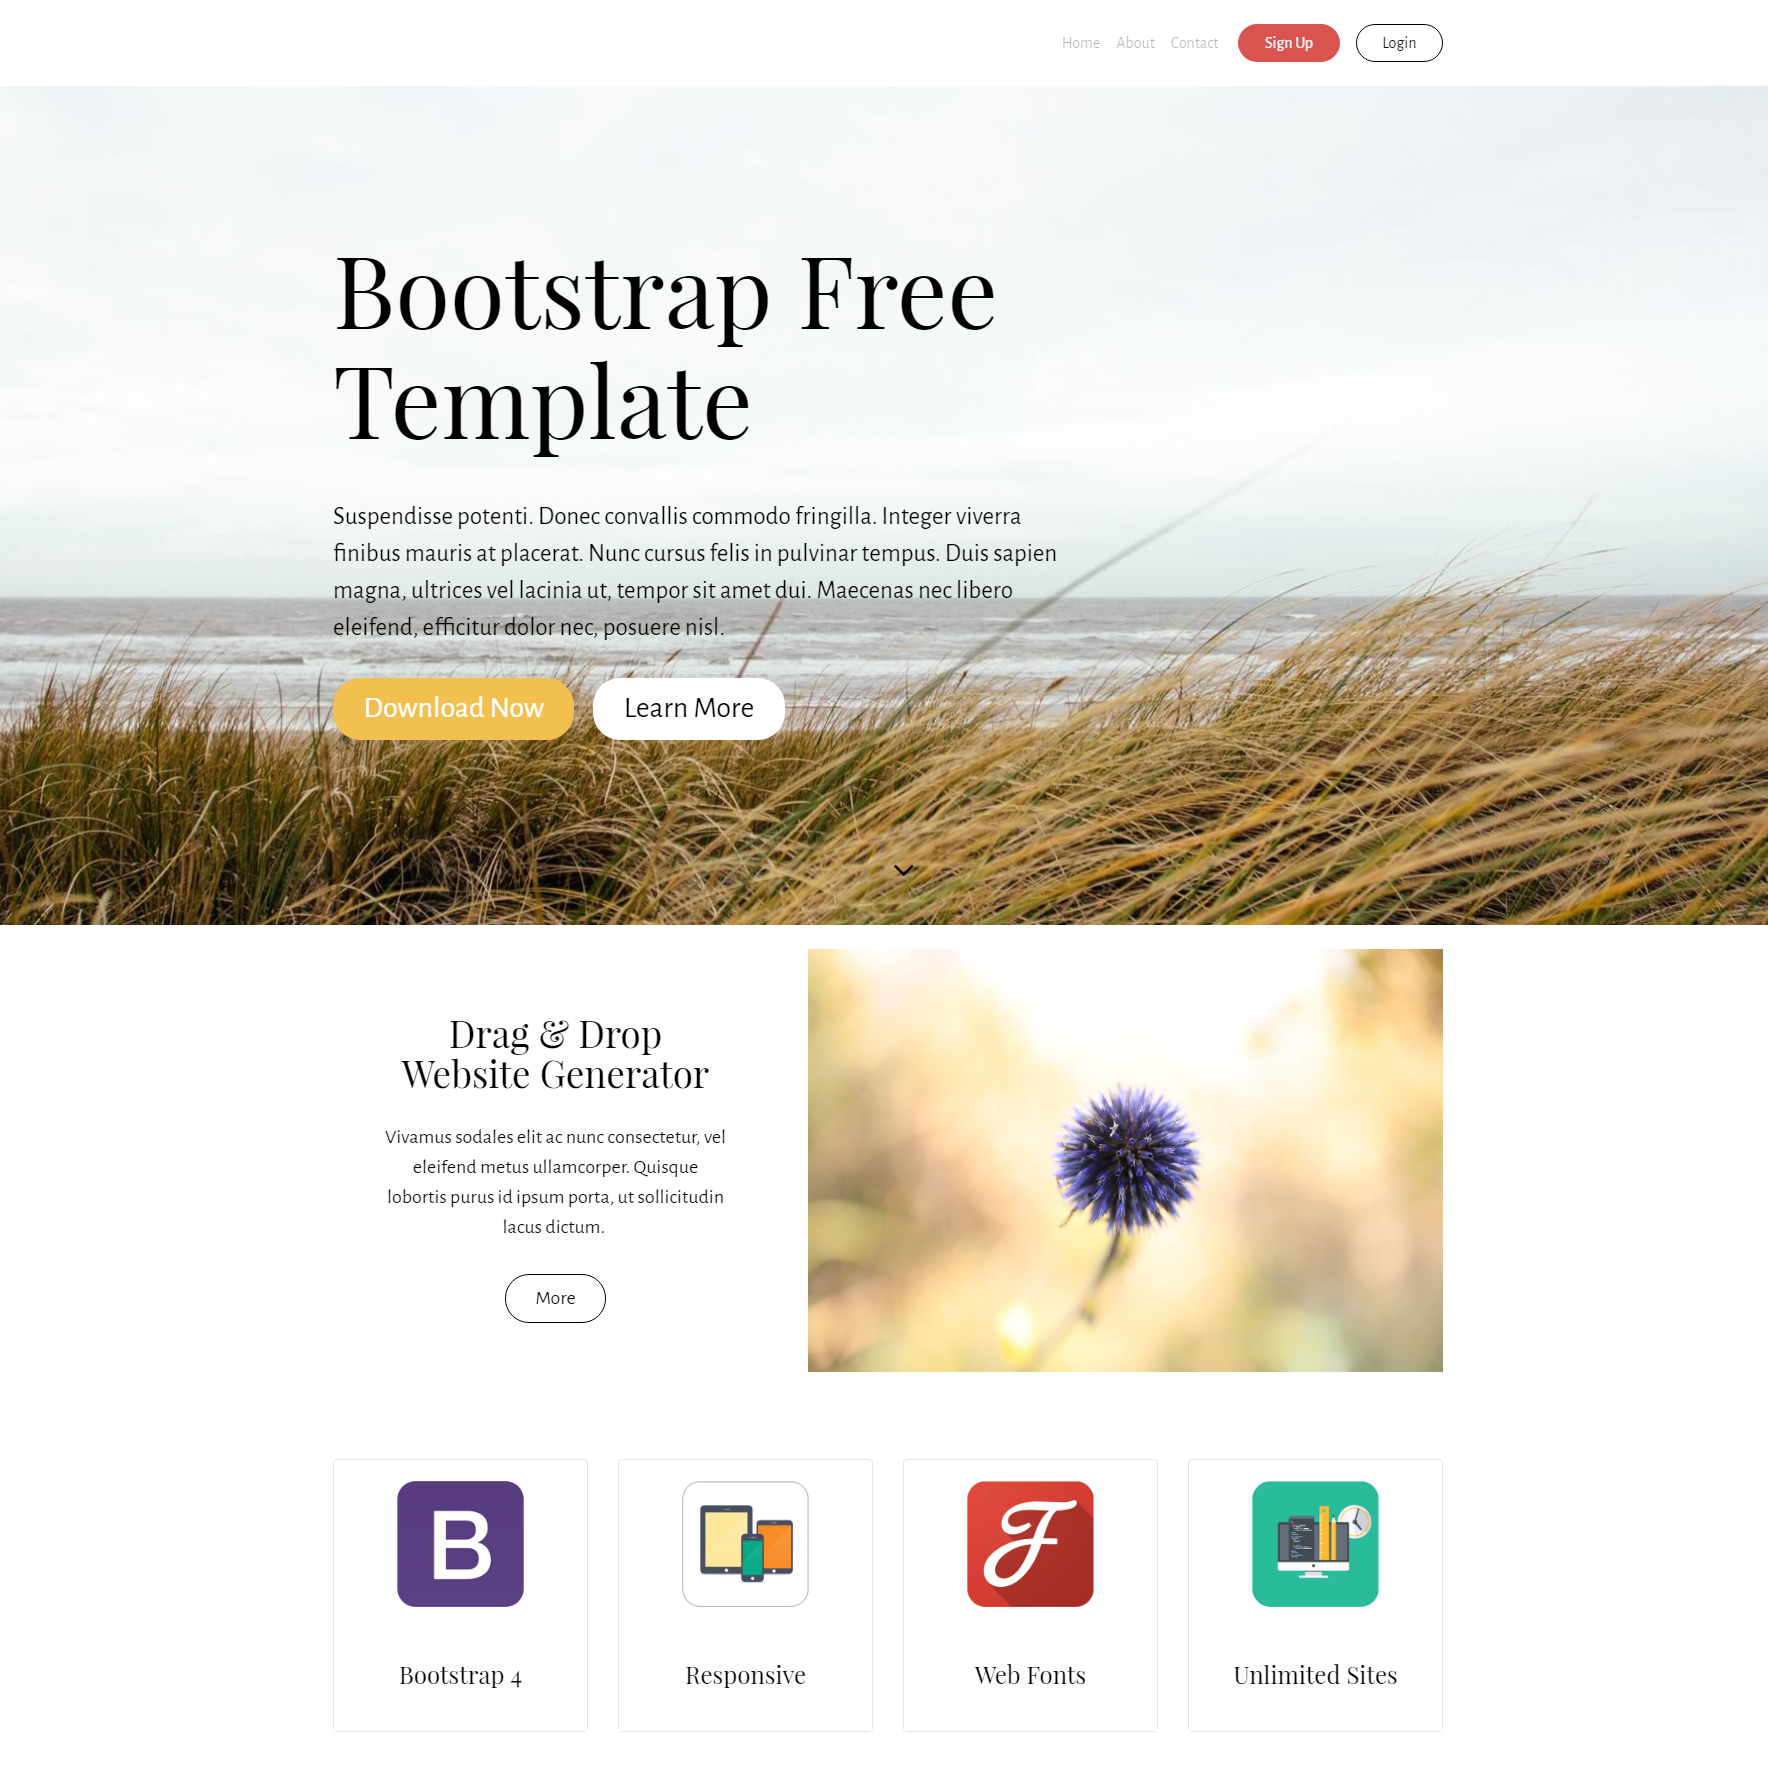 Download Bootstrap Free Templates